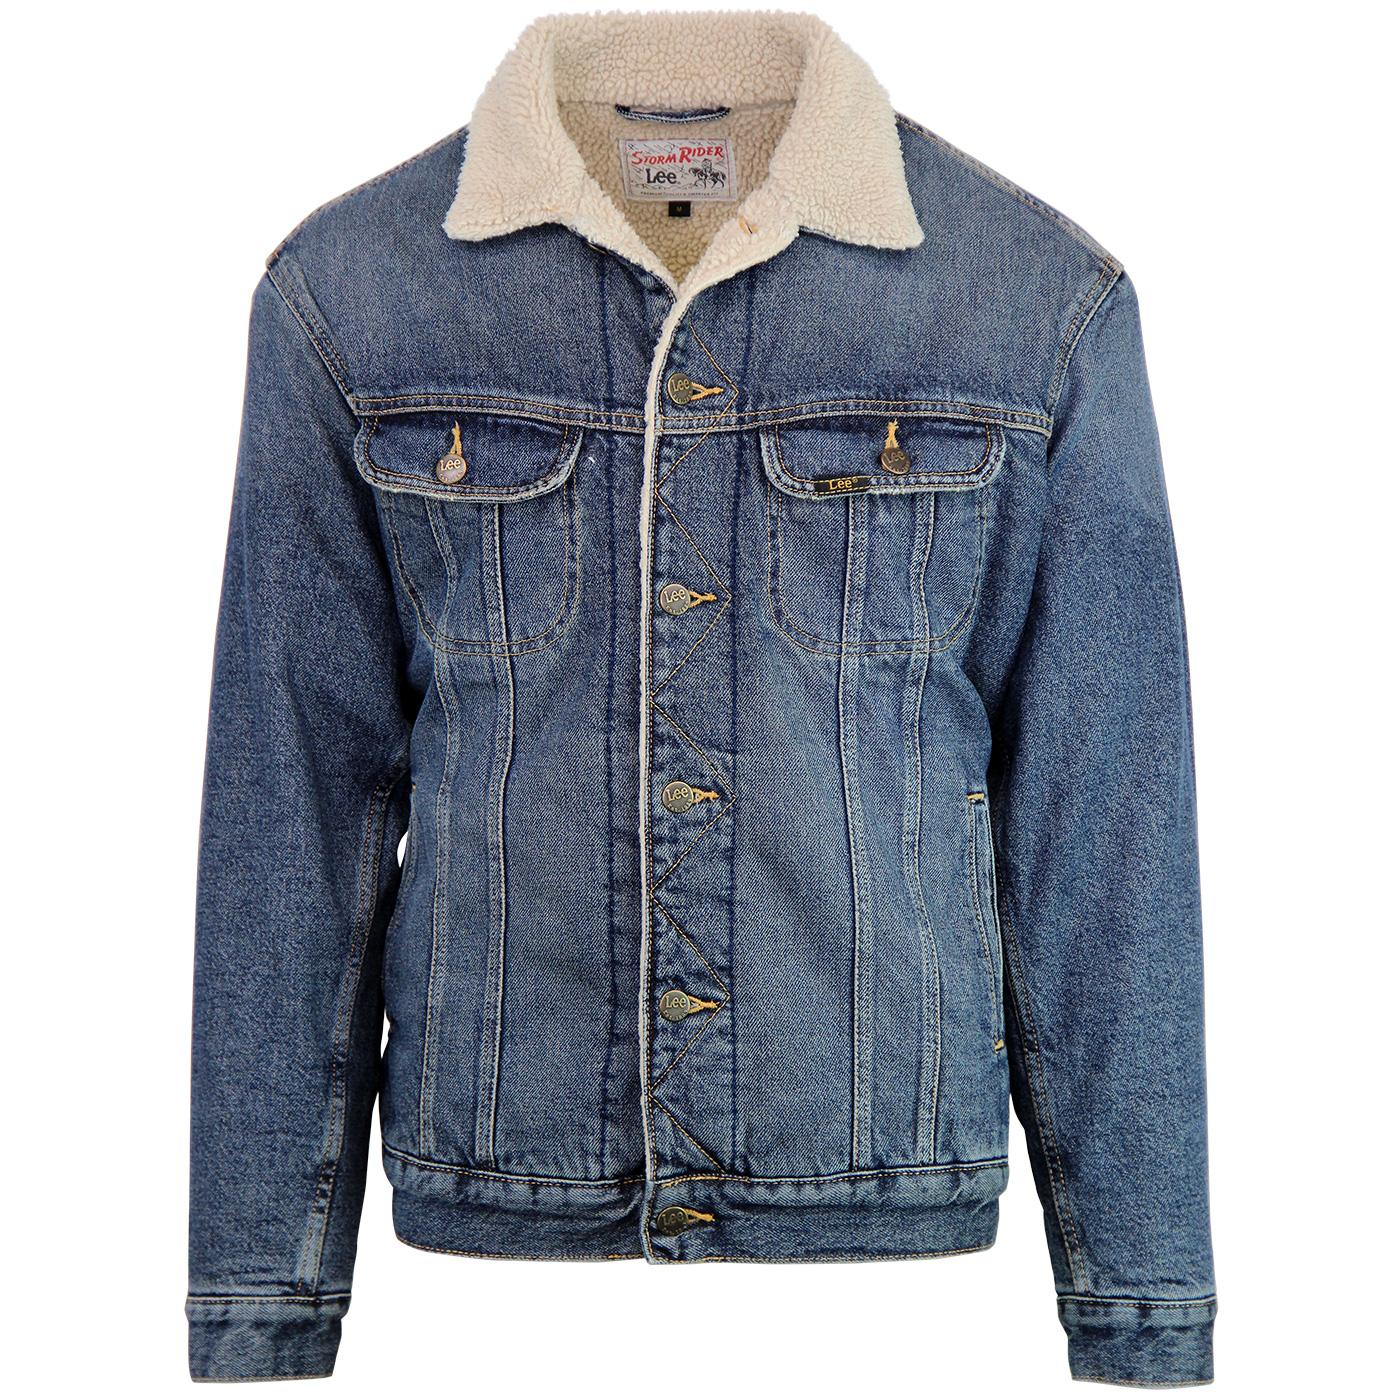 Storm Rider LEE Men's Retro Sherpa Denim Jacket VW